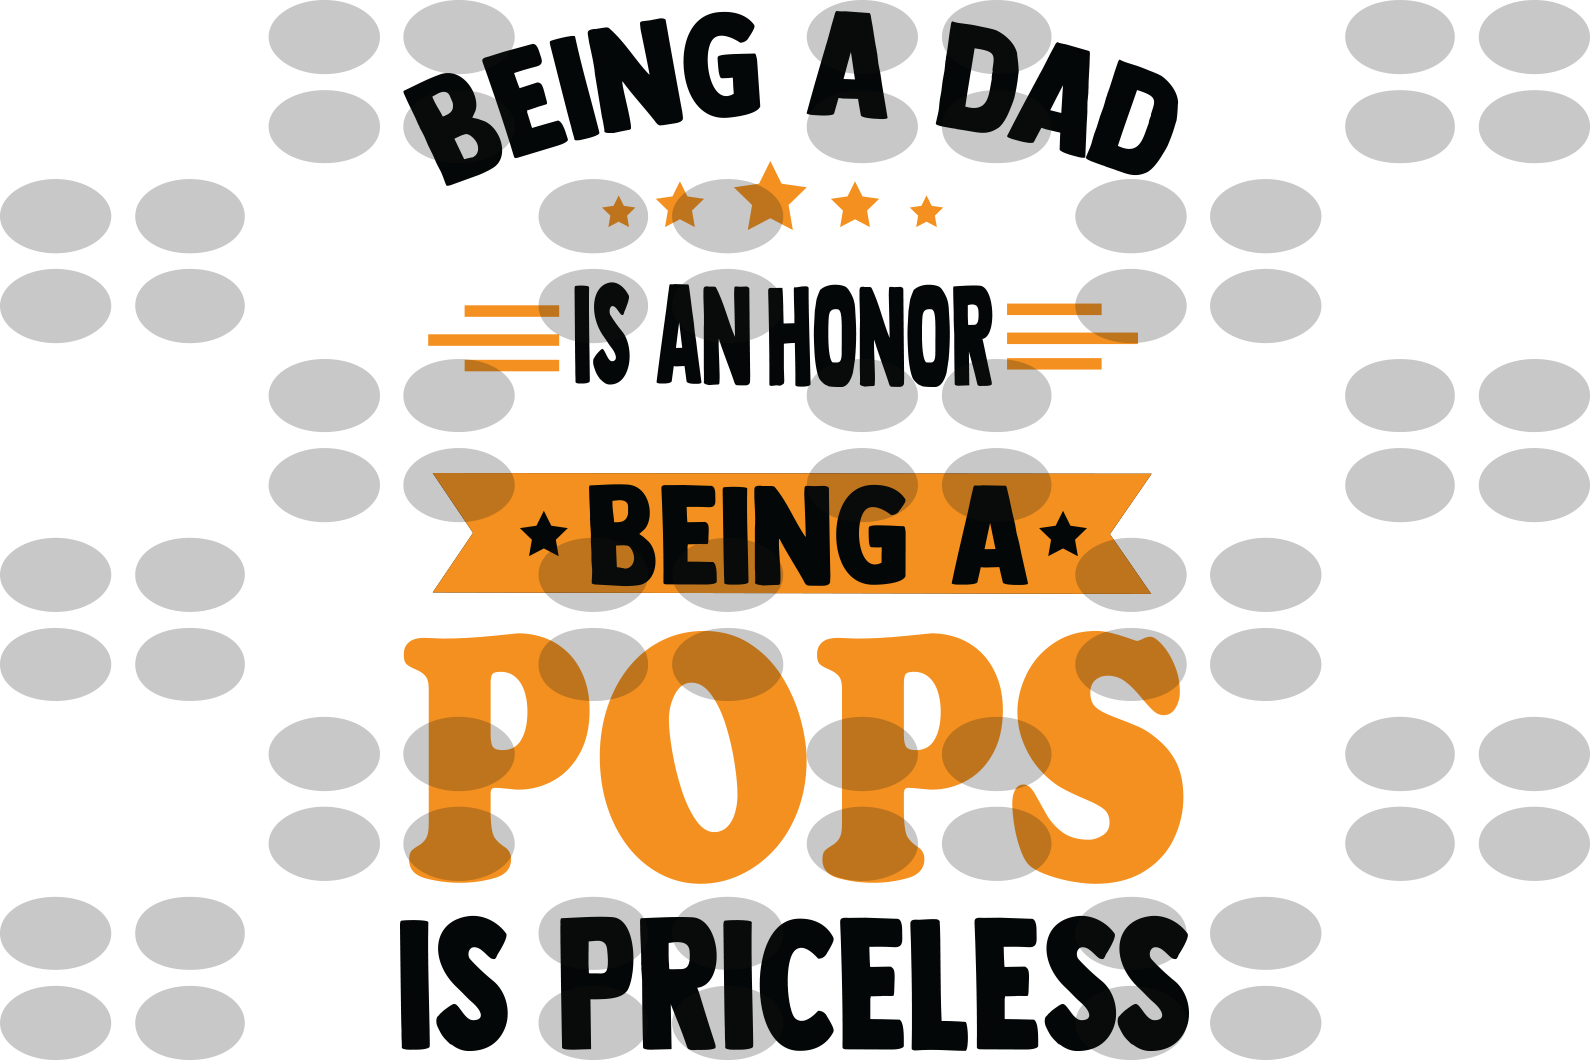 Being A dad Is An Honor Being A pops svg, father svg, father gifts svg, gifts for father, fatherdy svg, father birthday gift, father shirt, fathers day svg, papa svg, papa gifts svg, gift for papa